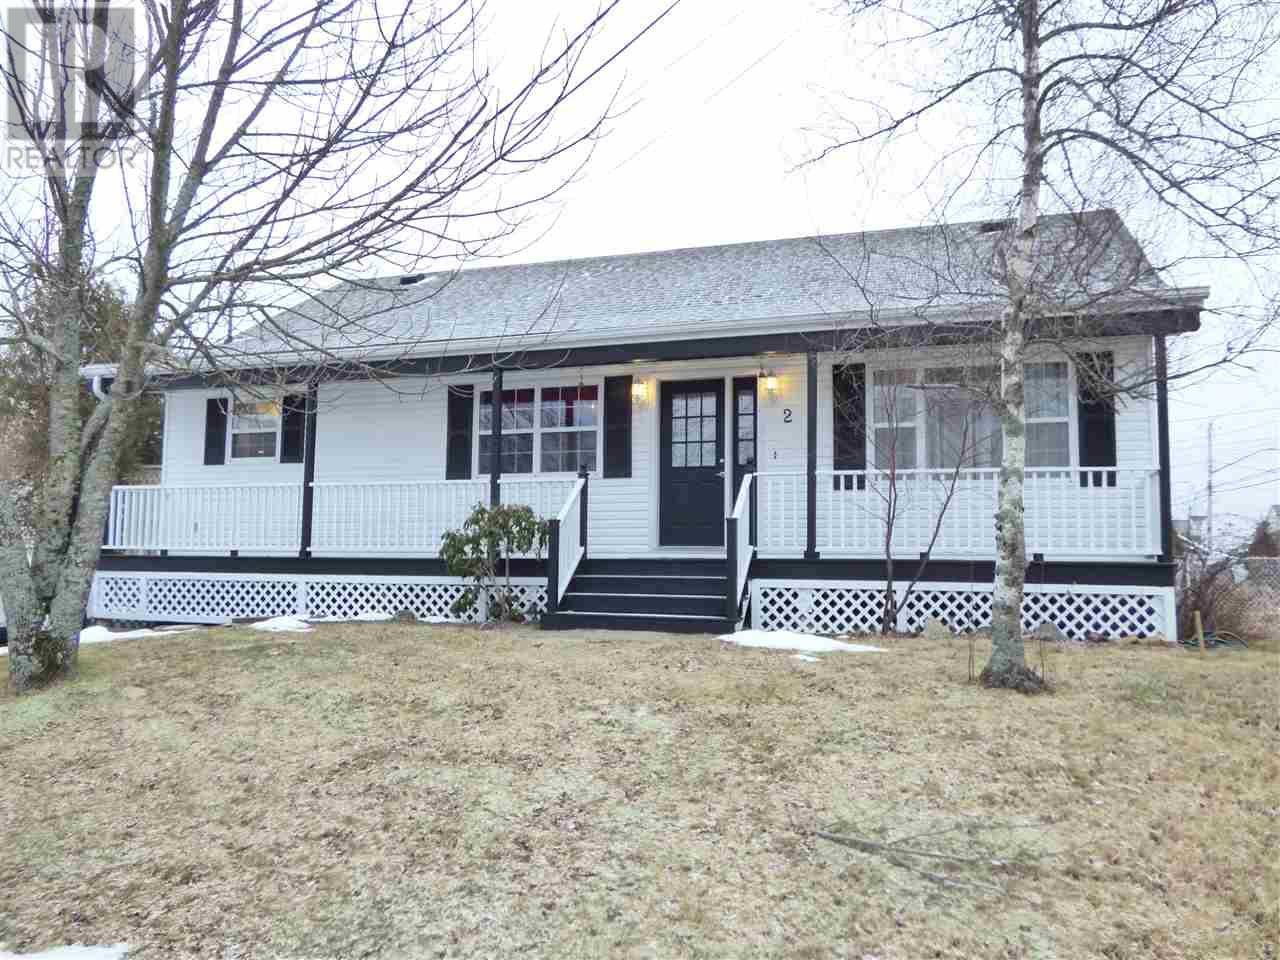 House for sale at 2 St. Clair Ave Dartmouth Nova Scotia - MLS: 202000690